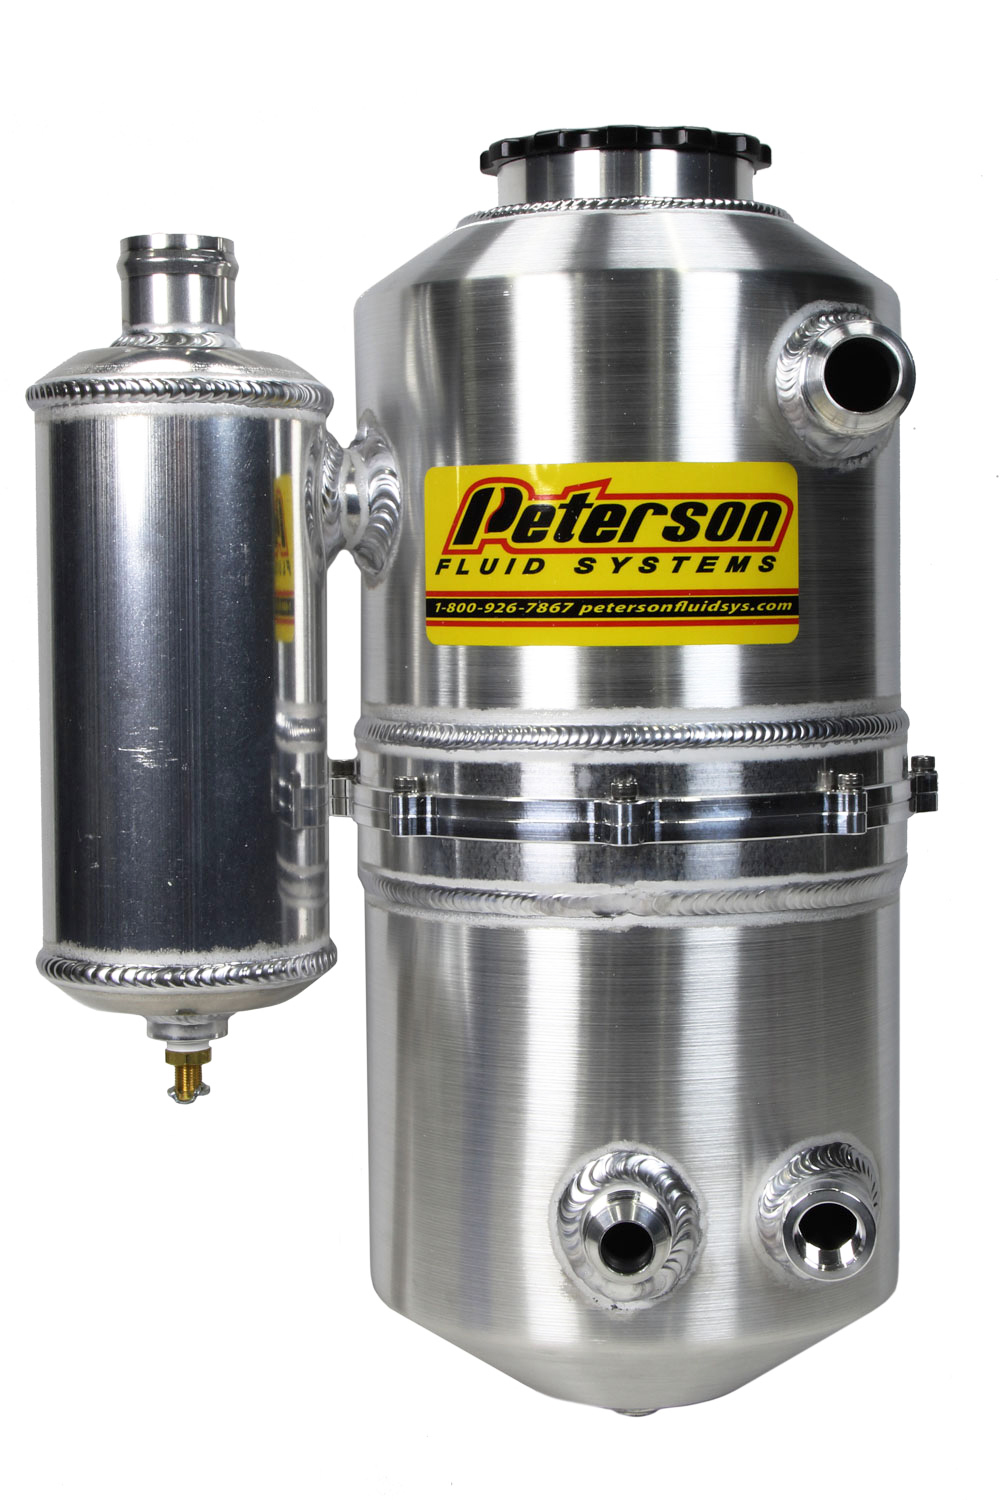 Peterson Fluid 08-0783-CC Oil Tank, Drag, Dry Sump, 10 qt, 16-5/8 in Tall, 7 in OD, 12 AN Male Inlet, 12 AN Male Outlet, Catch Can, Heater Port, Aluminum, Natural, Each